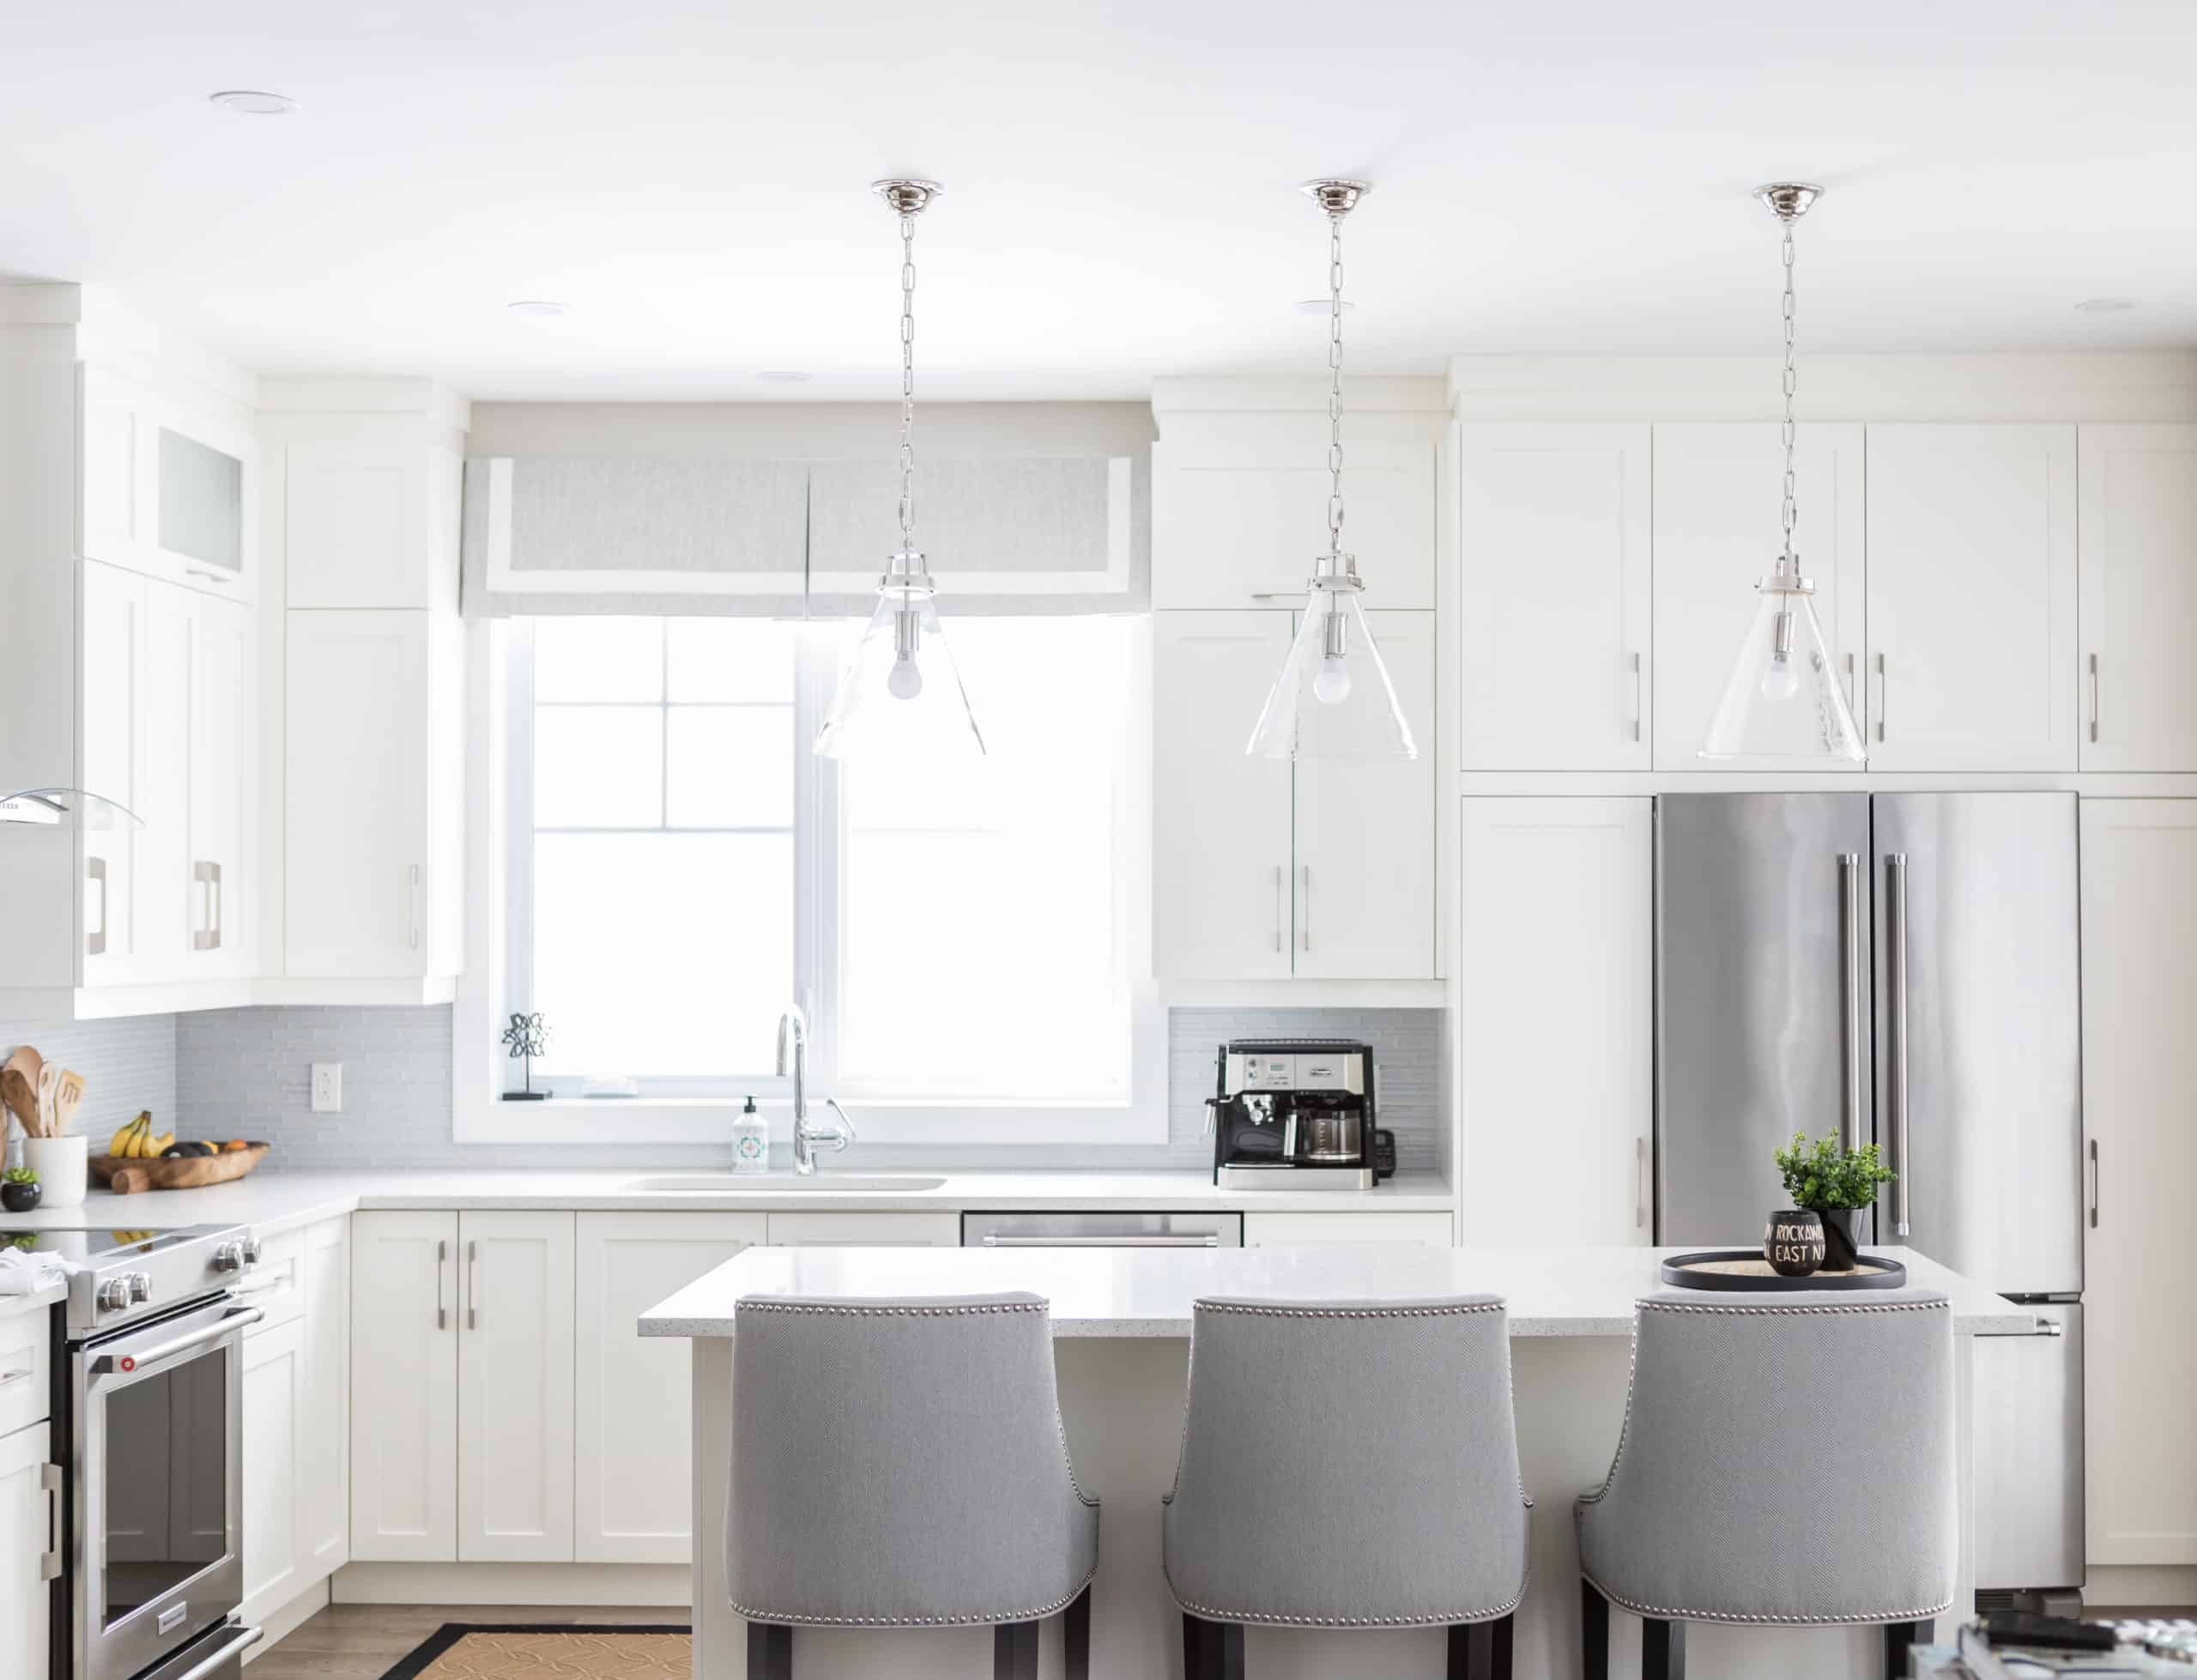 Bright white kitchen with a small island